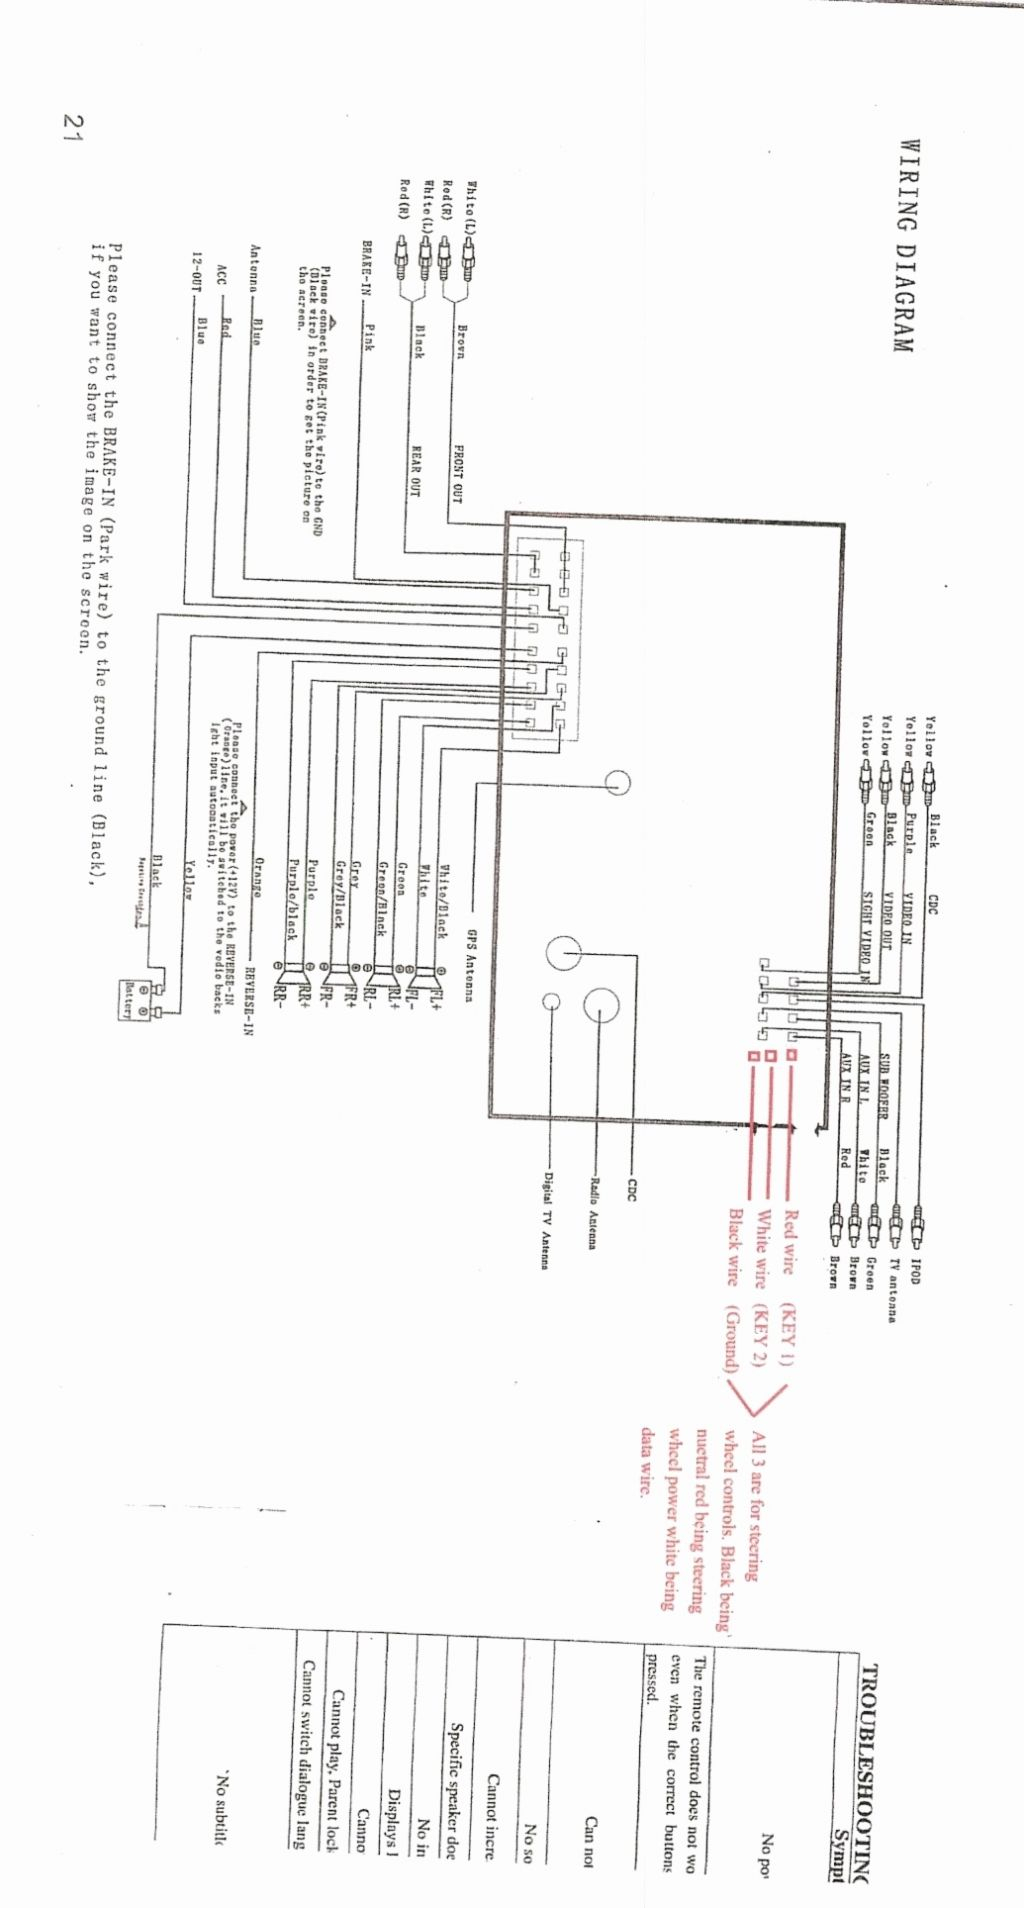 gmos lan 02 wiring diagram Download-Axxess Gmos 04 Wiring Diagram Beautiful Awesome Gmos 01 Wiring Diagram S Best For Wiring 12-g